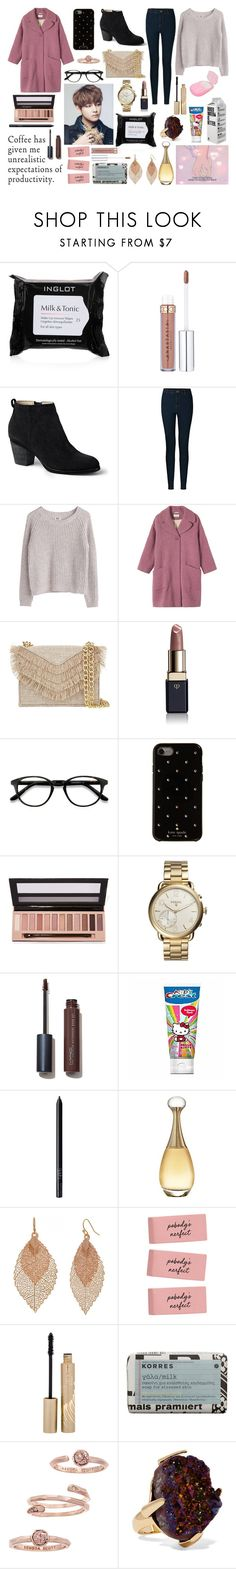 """Ideal Type Taehyung"" by amyliannebarlow ❤ liked on Polyvore featuring Inglot, Lands' End, Vero Moda, MTWTFSS Weekday, Toast, Cynthia Rowley, Clé de Peau Beauté, EyeBuyDirect.com, Kate Spade and L.A. Girl"